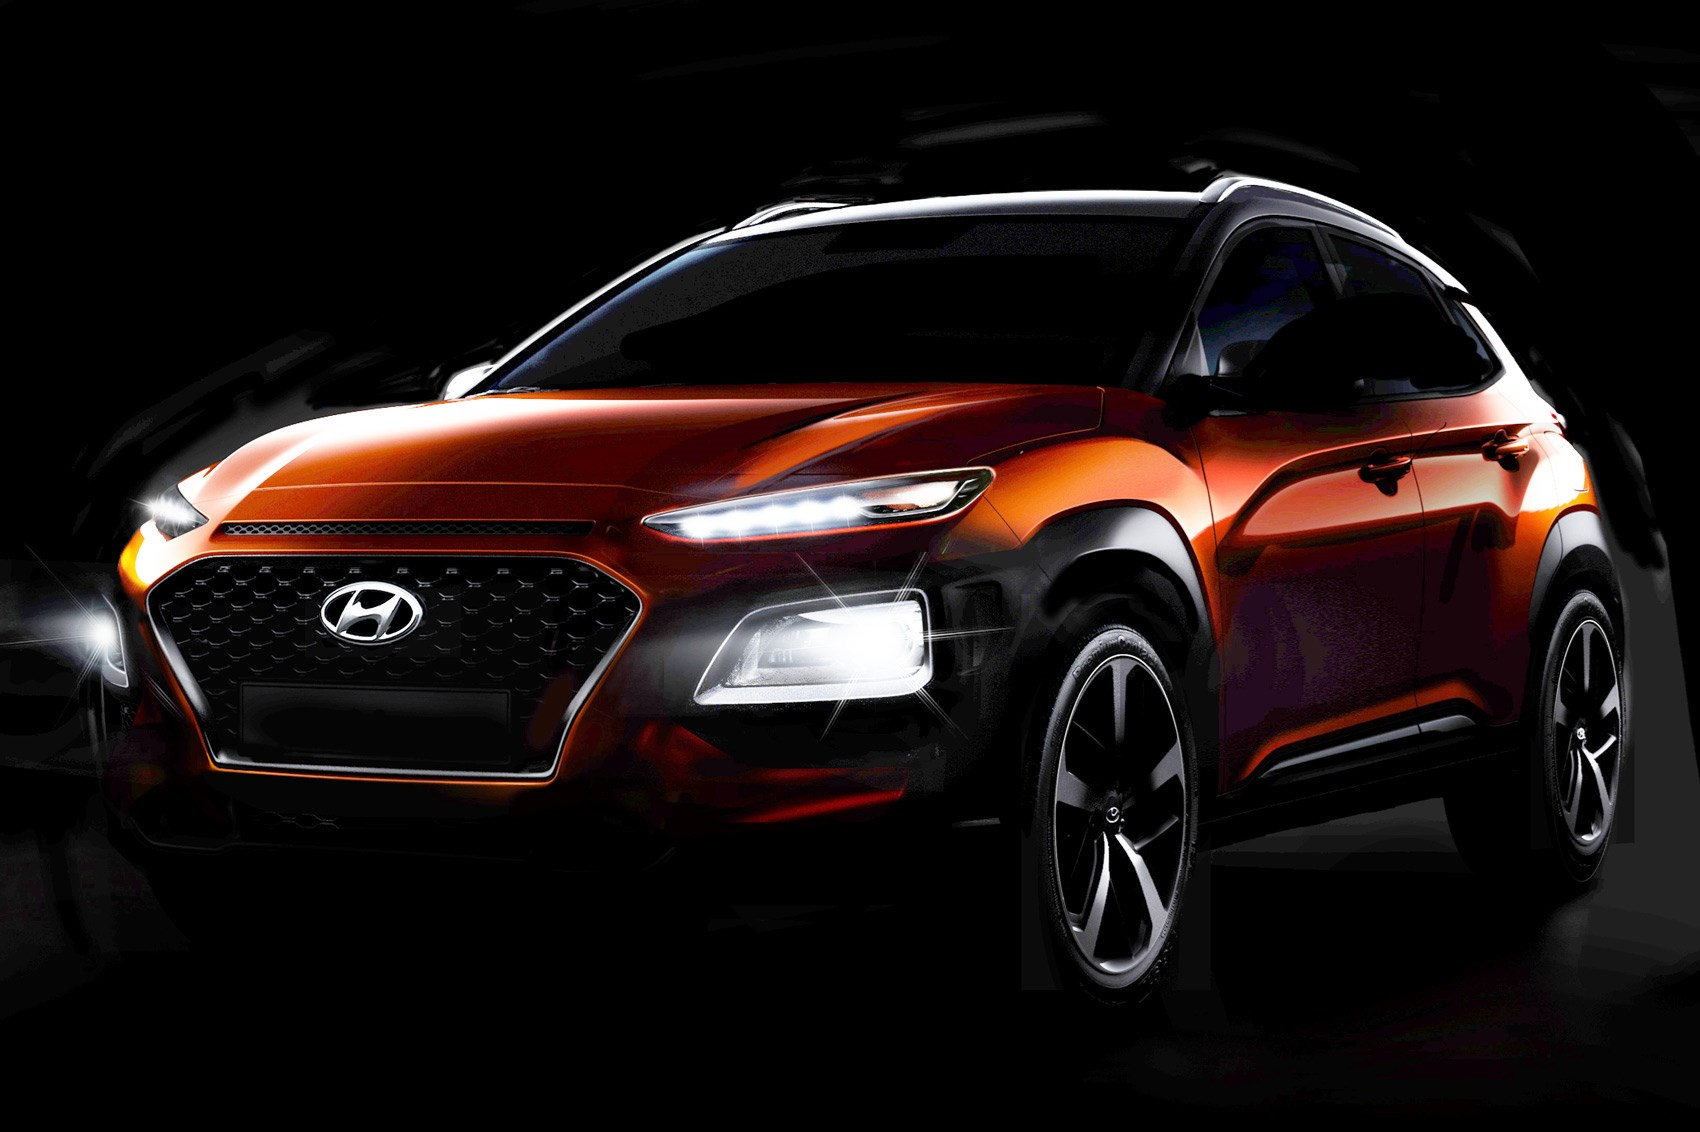 New Hyundai Kona SUV: specs, pics and details on Electric ...